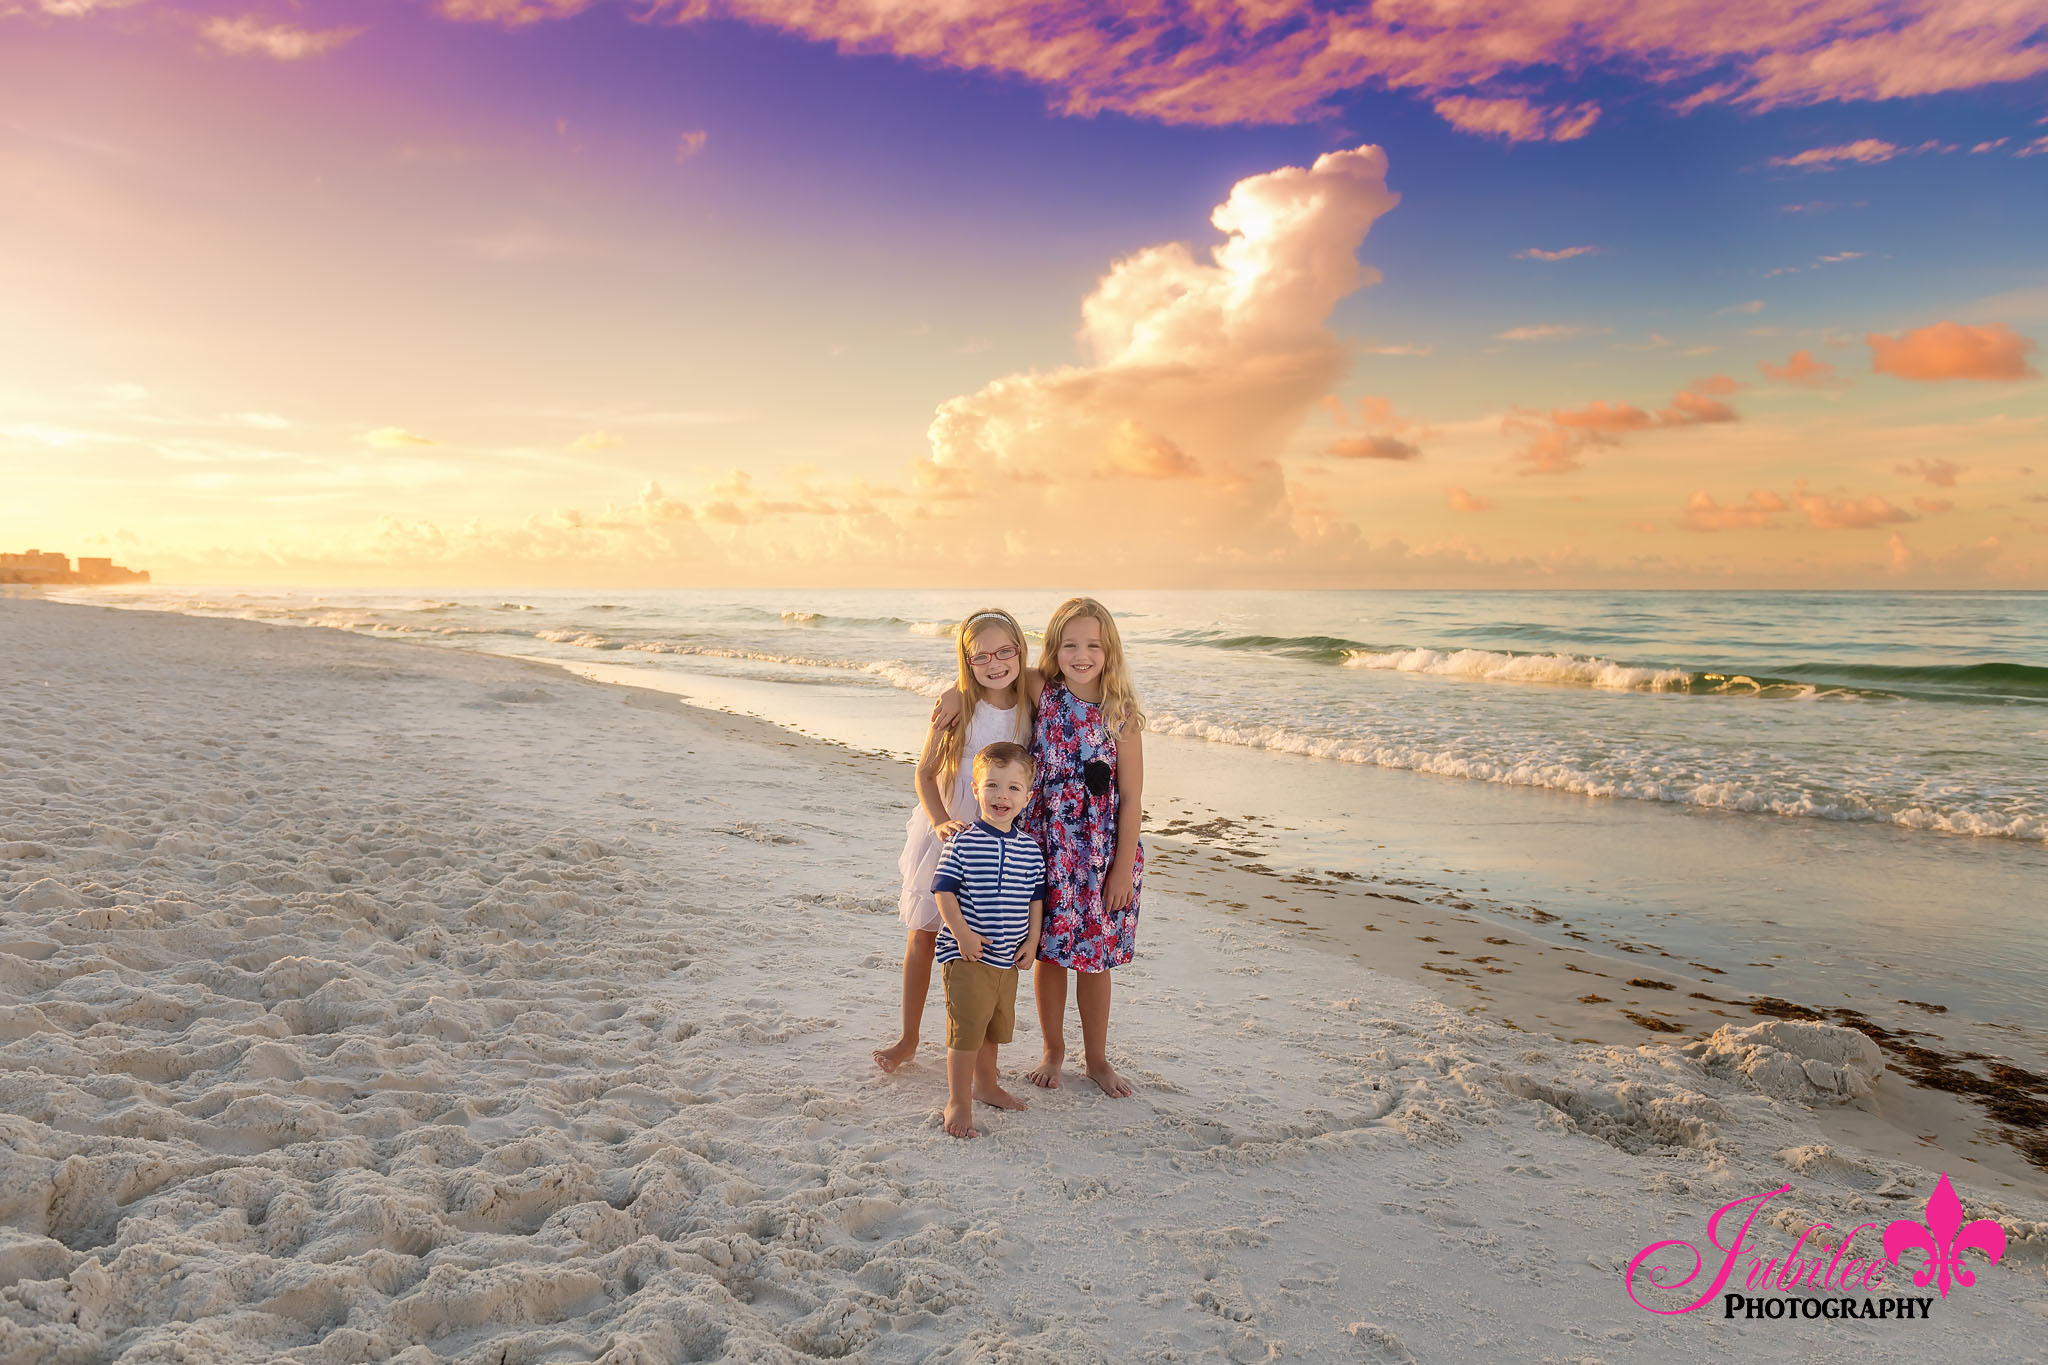 destin_photographer_6148